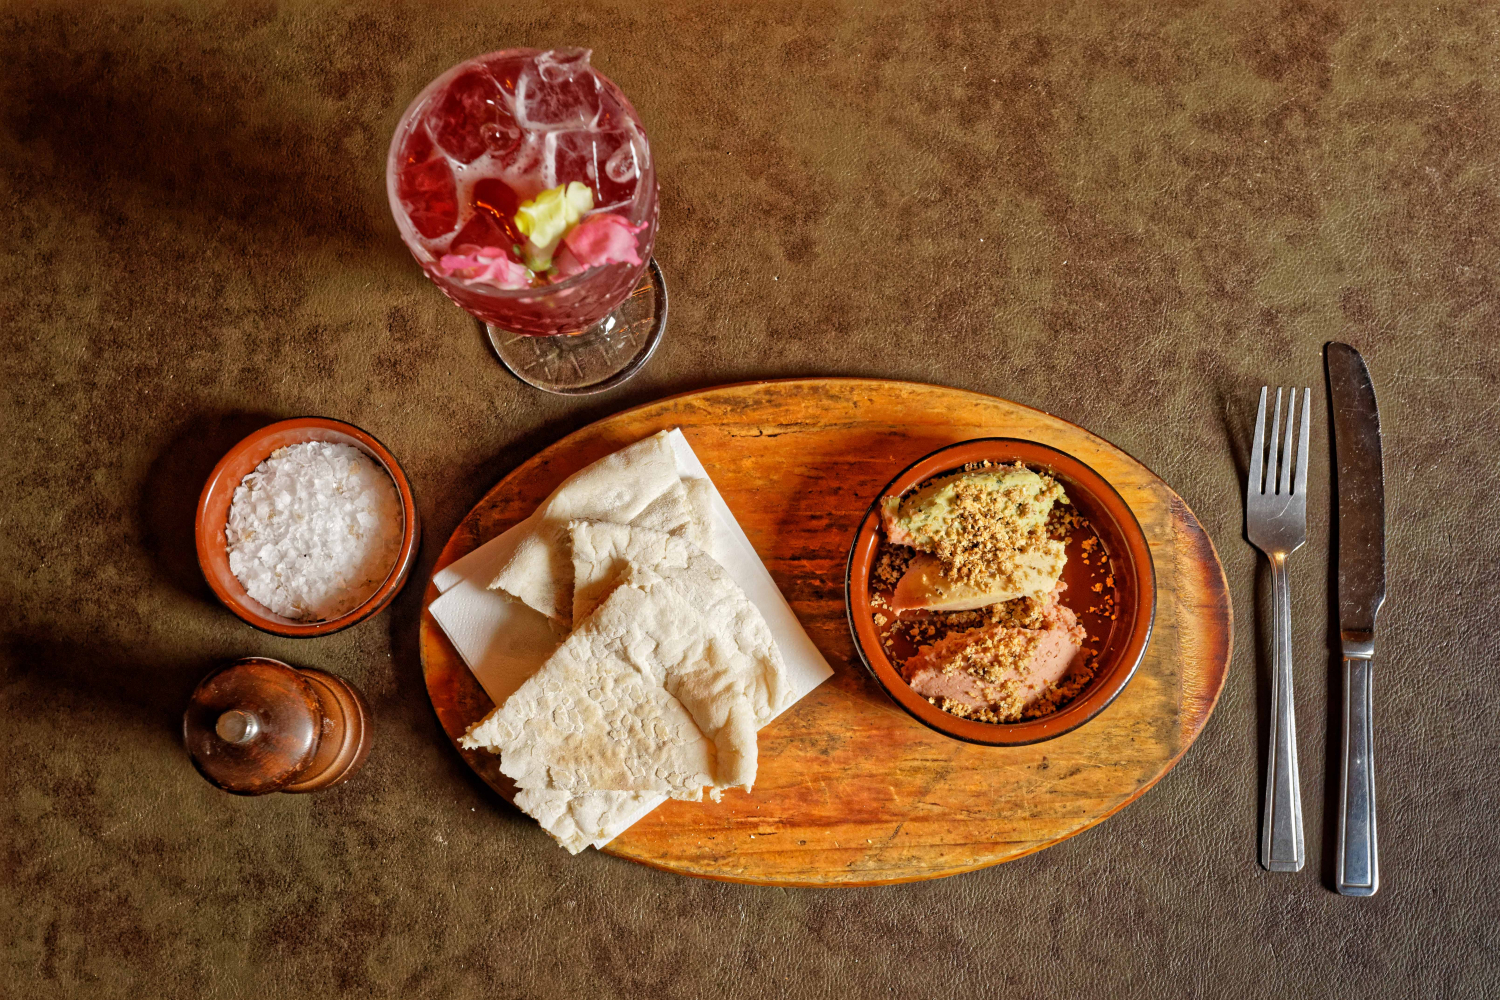 A picture of our hummus and flatbread side with a soft drink